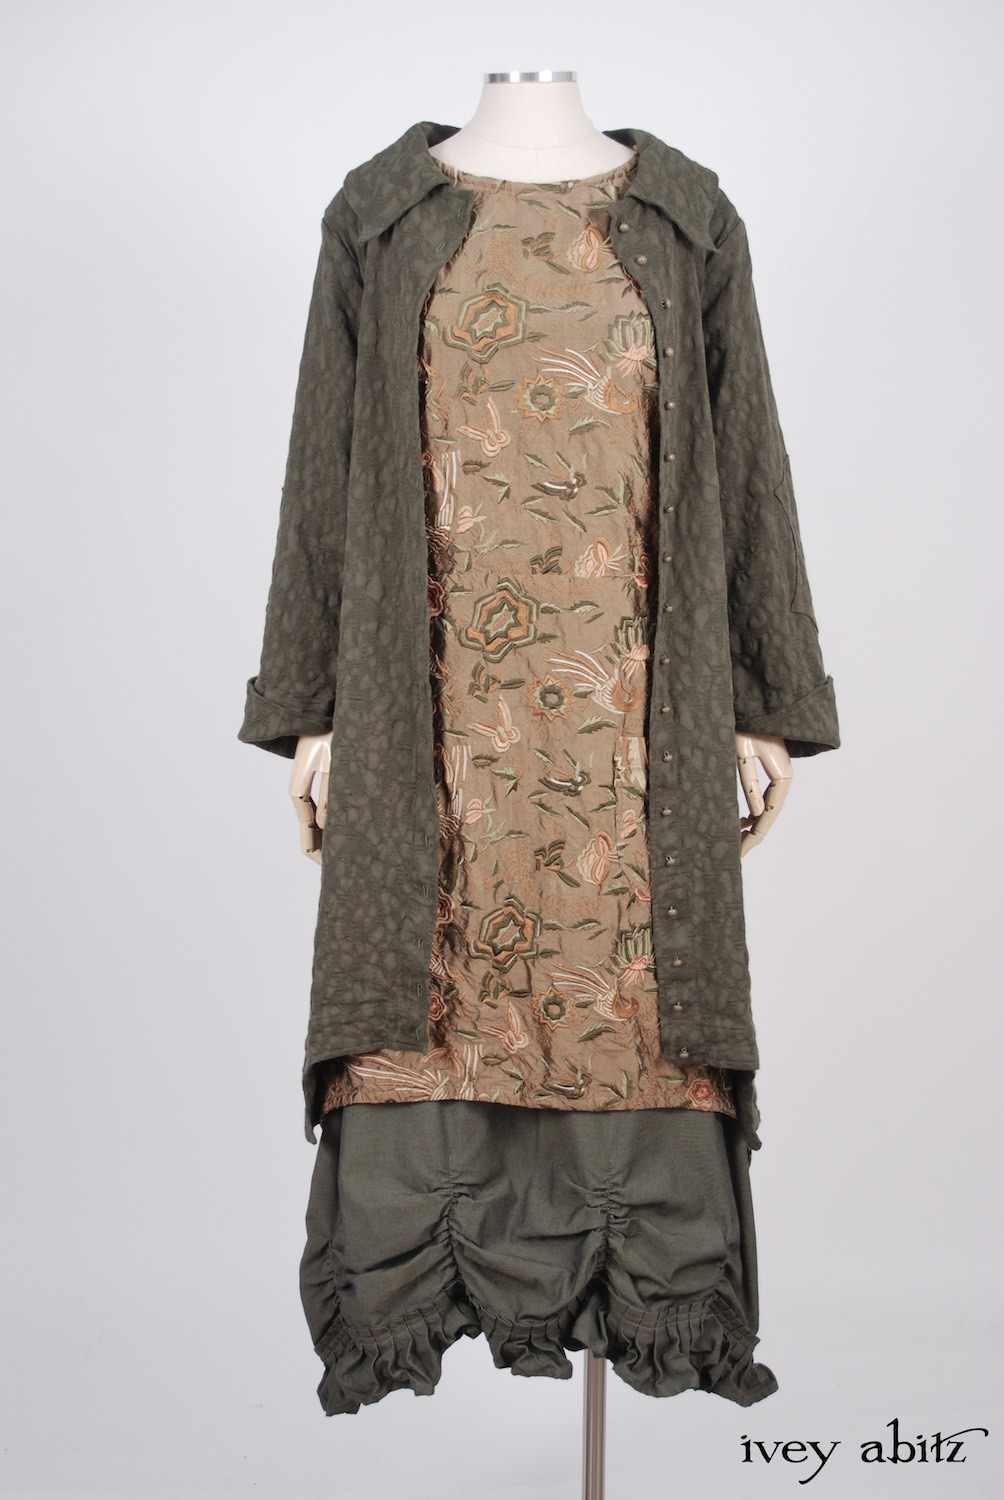 Ivey Abitz - Chittister Duster Coat in Morning Meadow Hemstitch Jacquard  - Dennison Frock in Birdsong Embroidered Silk  - Edenshire Frock in Morning Meadow Yarn Dyed Cotton, Low Water Length